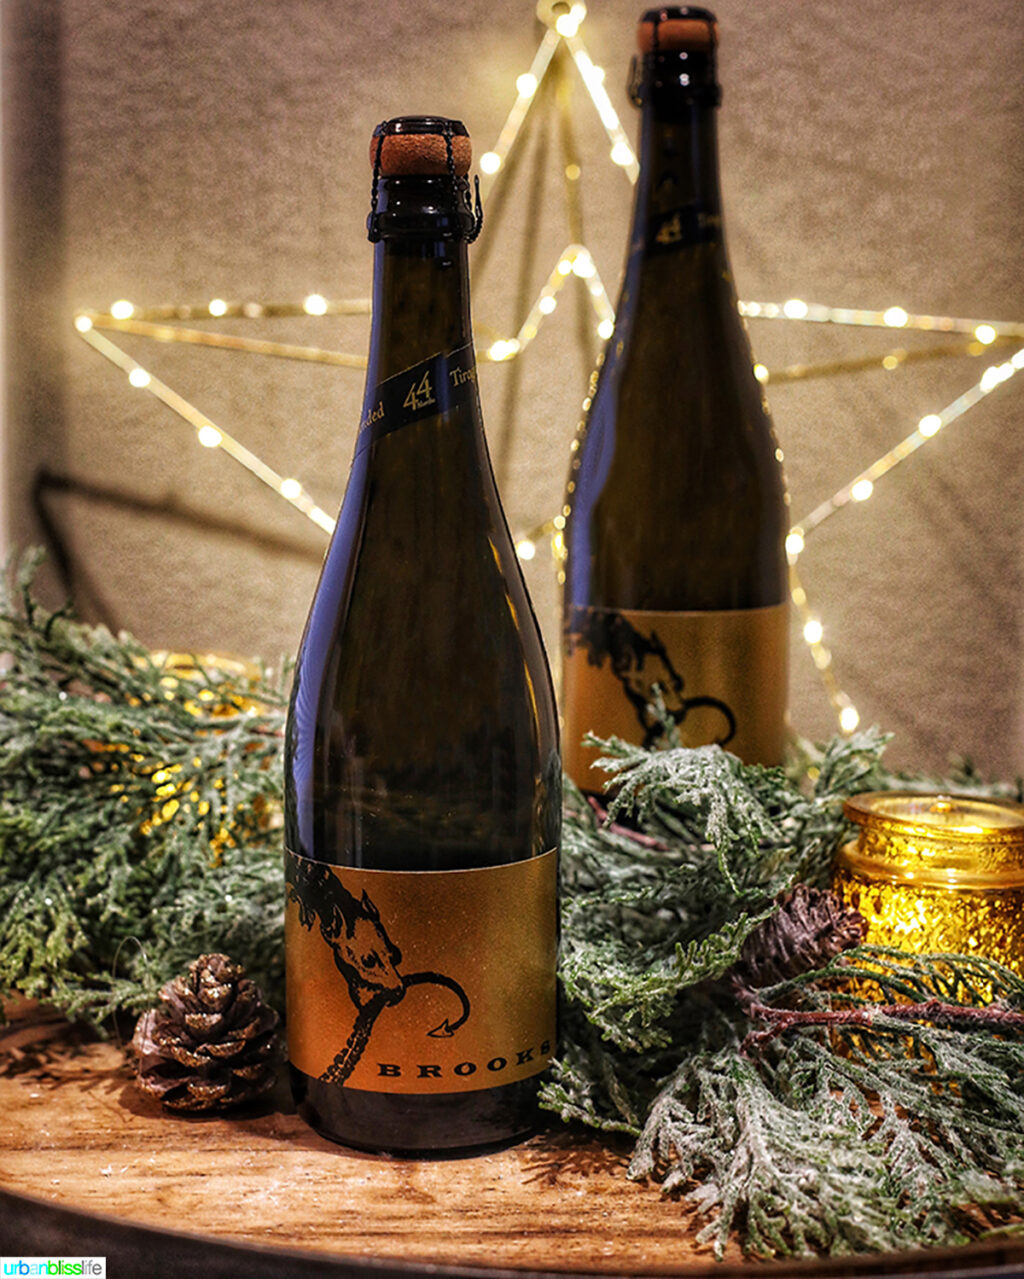 Brooks Winery Extended Tirage Sparkling Riesling